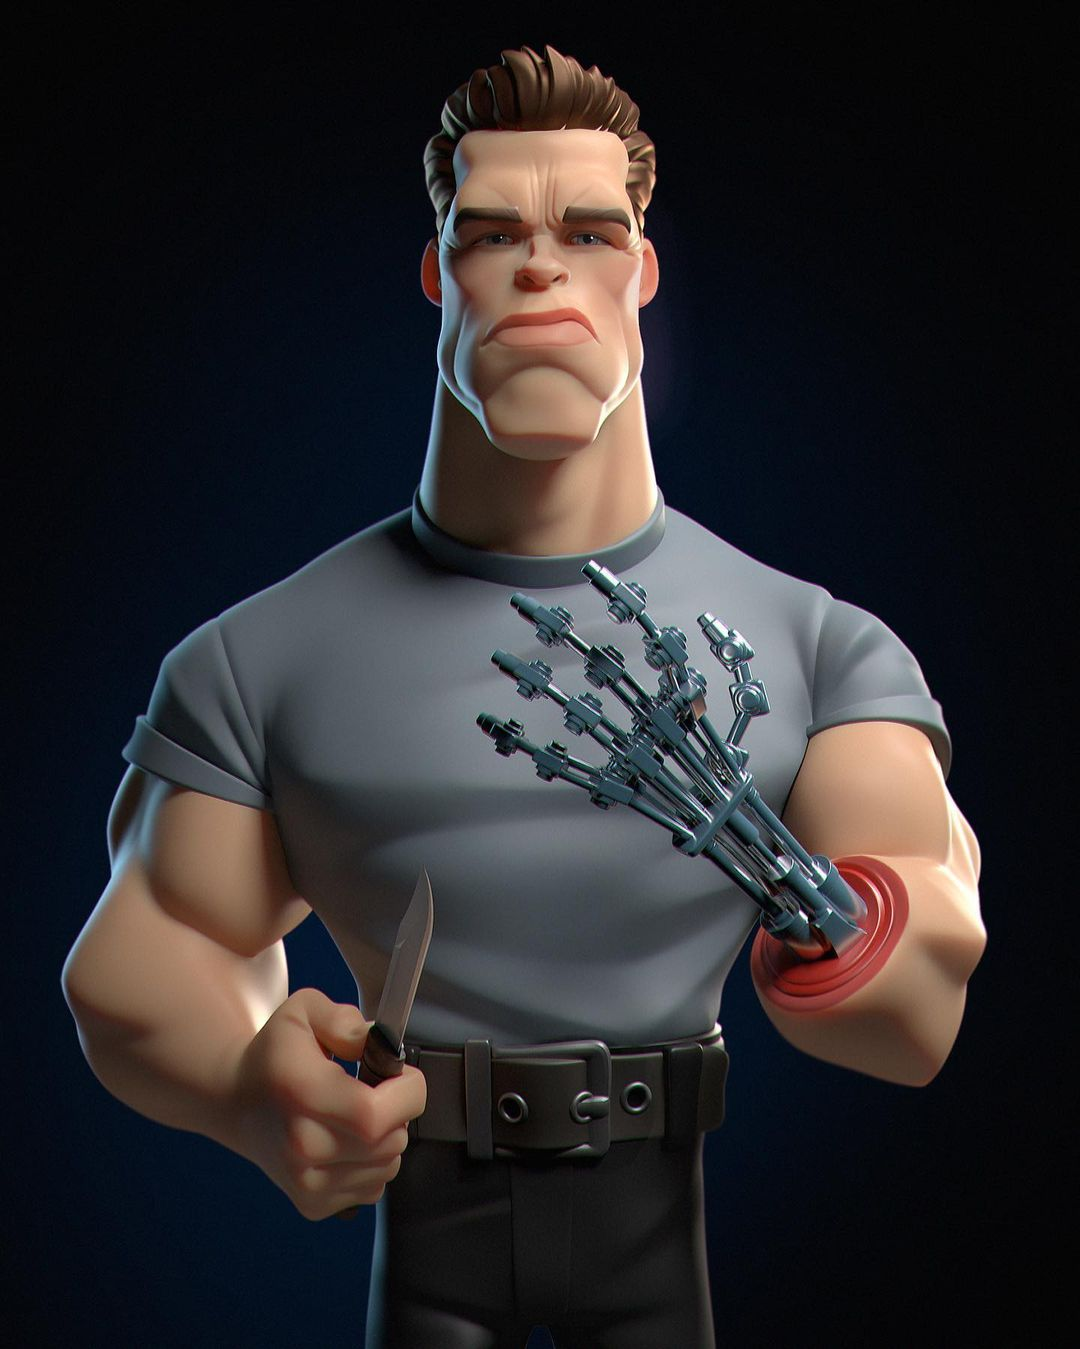 funny 3d model character arnold